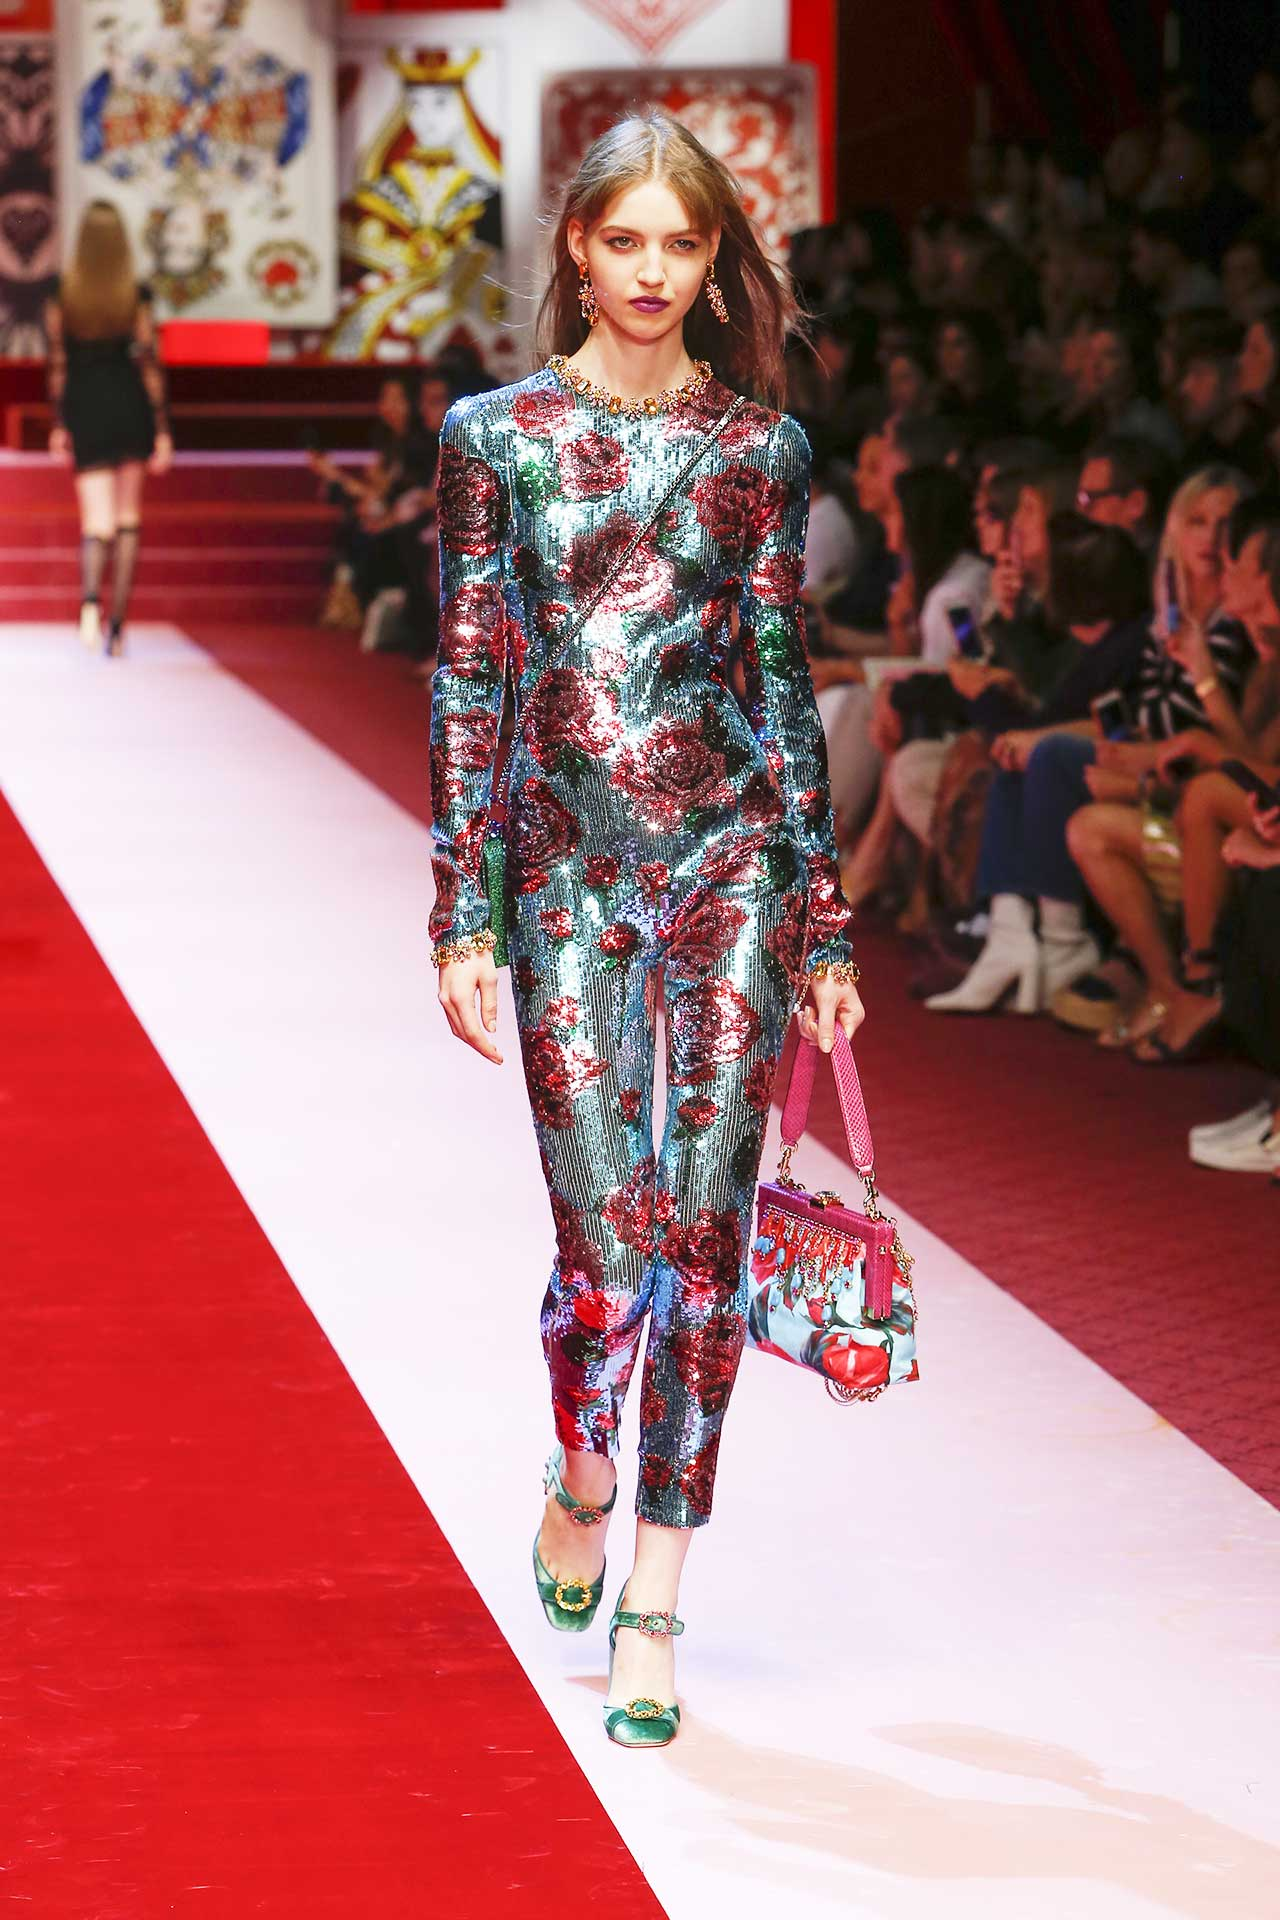 milan-fashion-week-trends-spring-2018-serious-sequins-dolce-and-gabbana-look-79